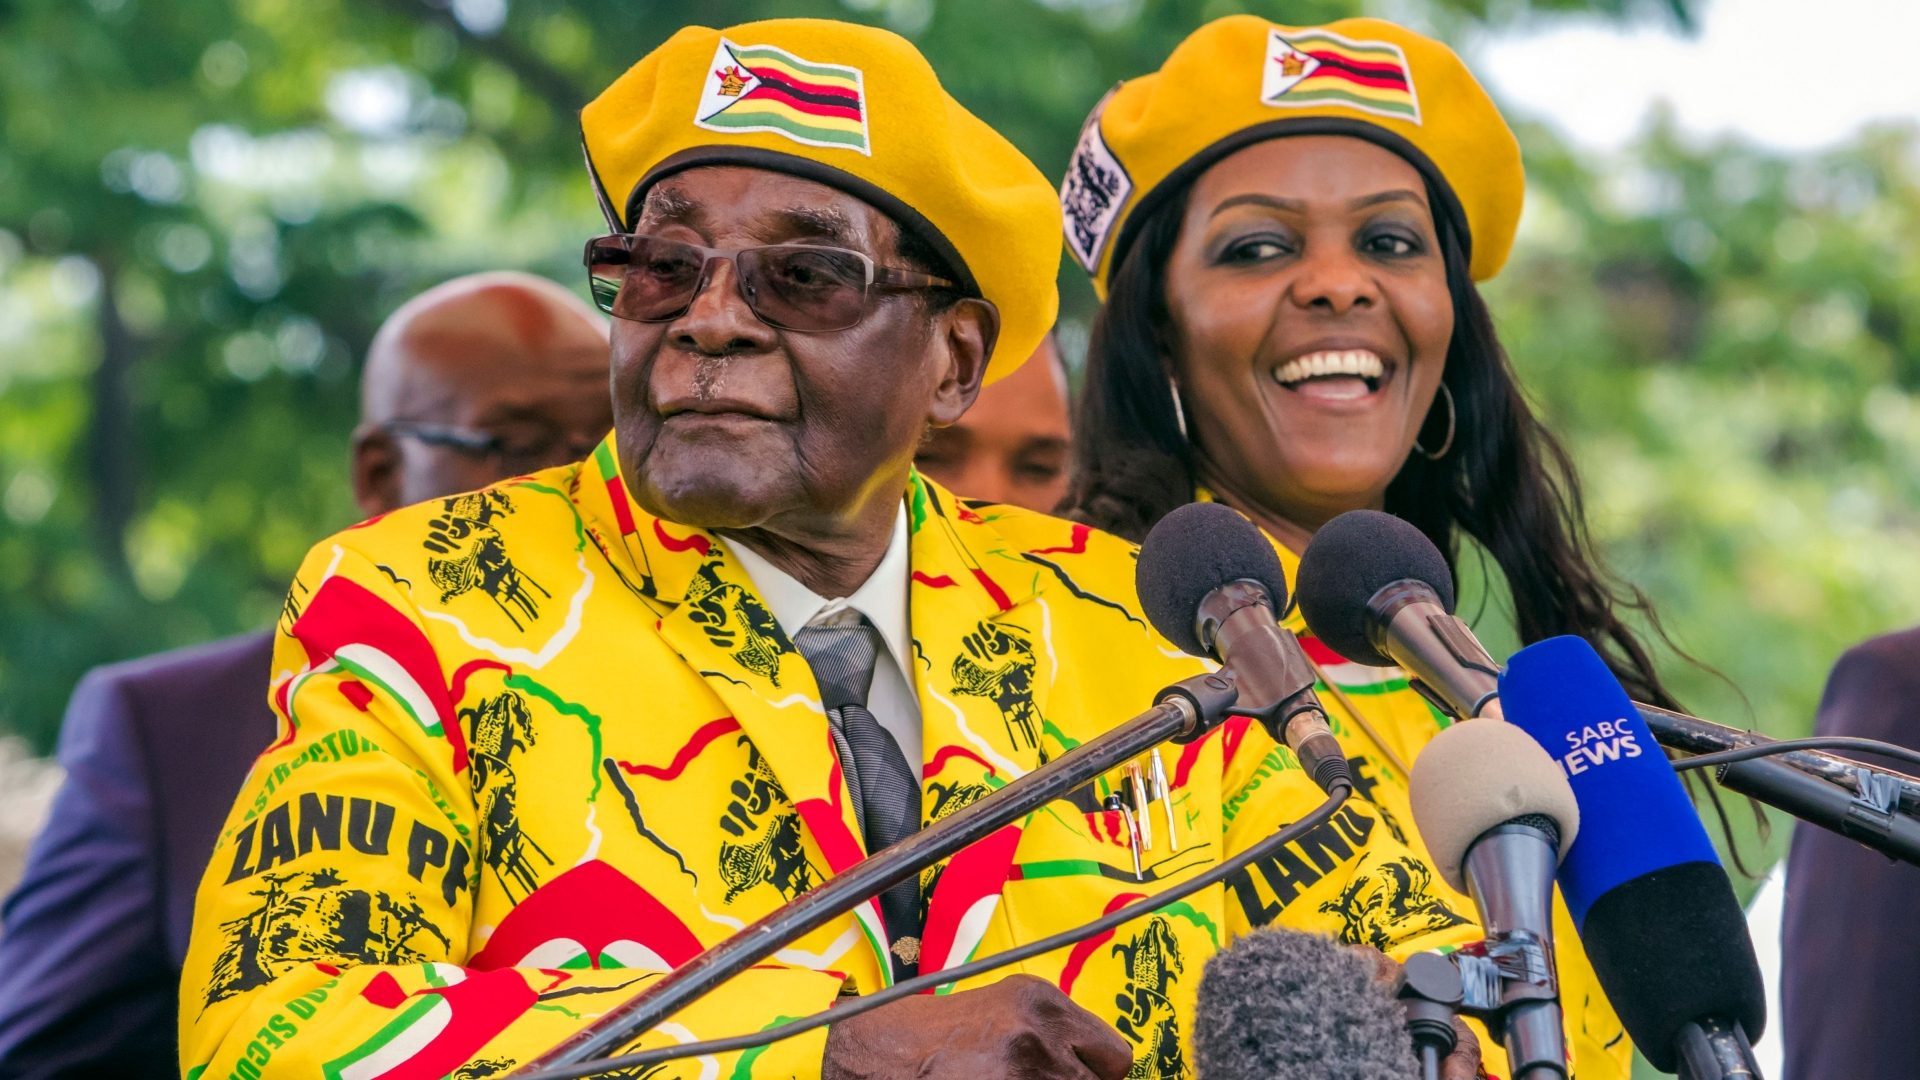 Zimbabwe's President Robert Mugabe and wife Grace Mugabe, who had recently become the party's next Vice President in November 2017. (Credit: Jekesai Njikizana/AFP/Getty Images)